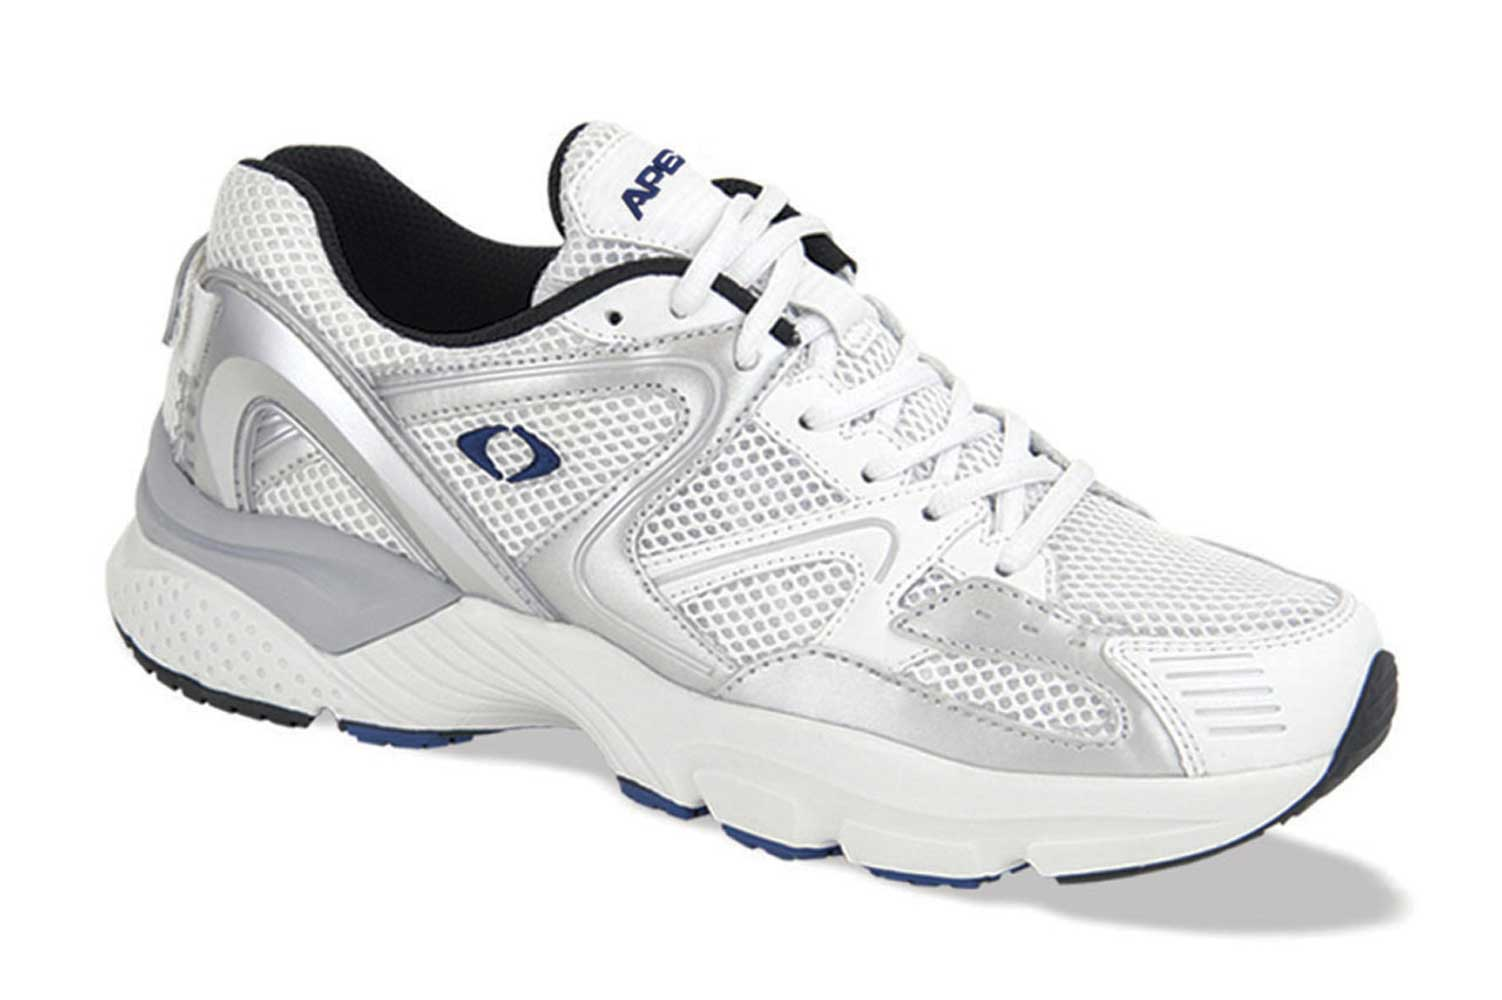 Best Brooks Running Shoes For Orthotics